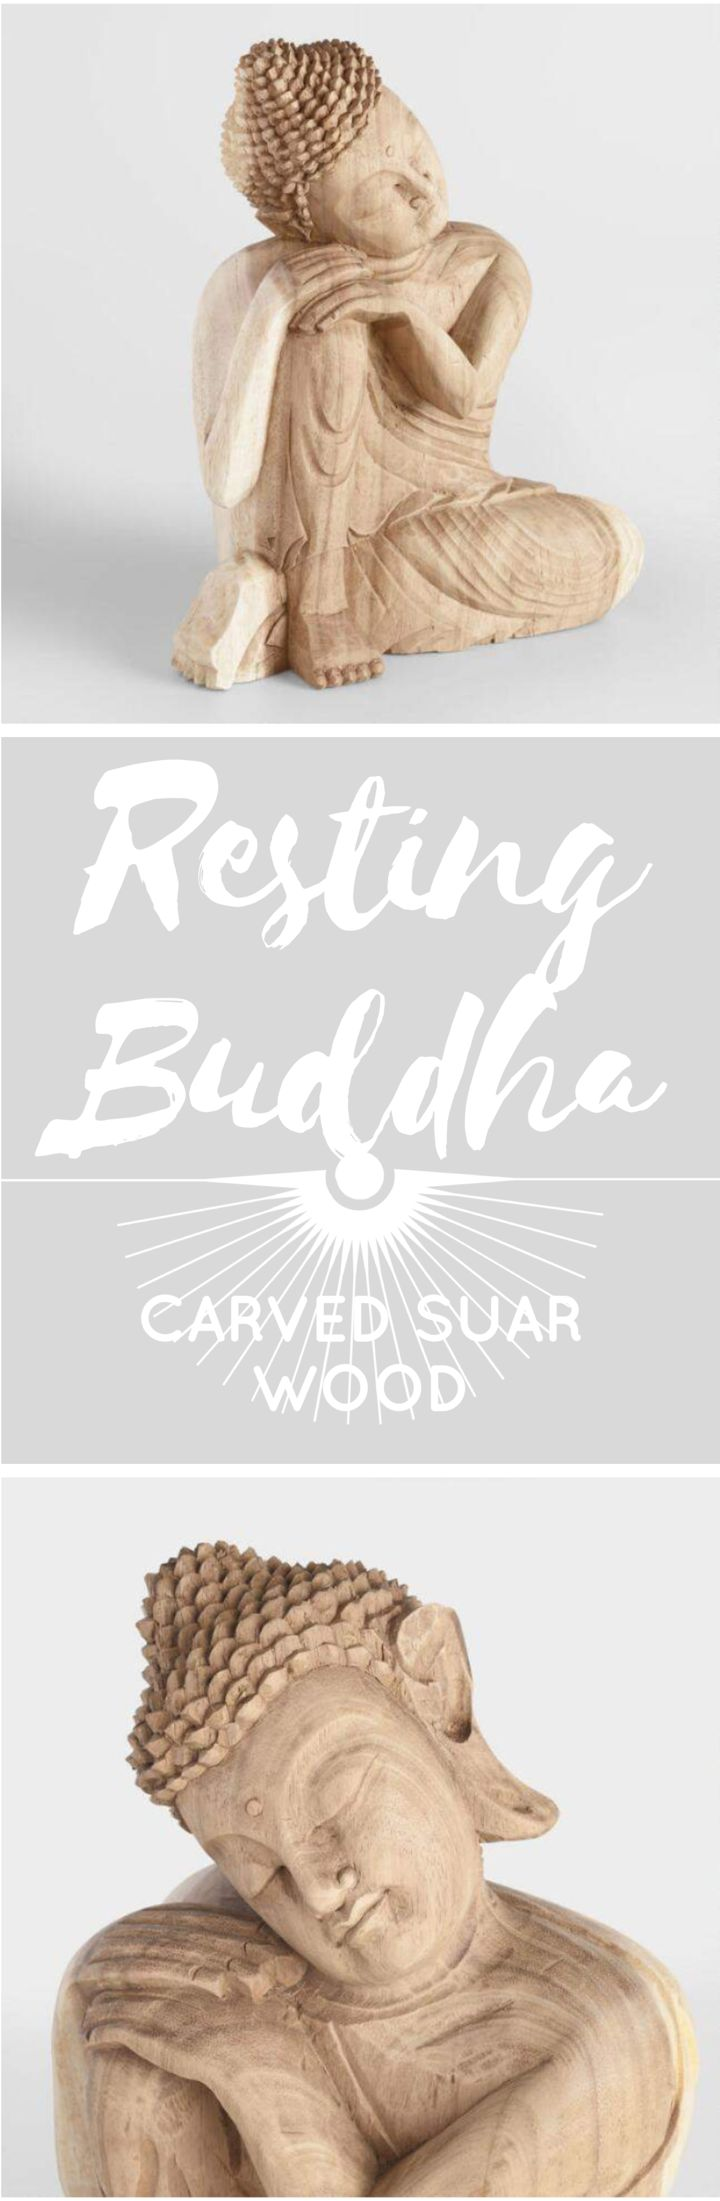 Carved Suar Wood Resting Buddha at Cost Plus World Market #ad #buddha #restingbuddha #meditate #meditation #peace #indonesia #homedecor #decor #hometrends #homestyle #accents